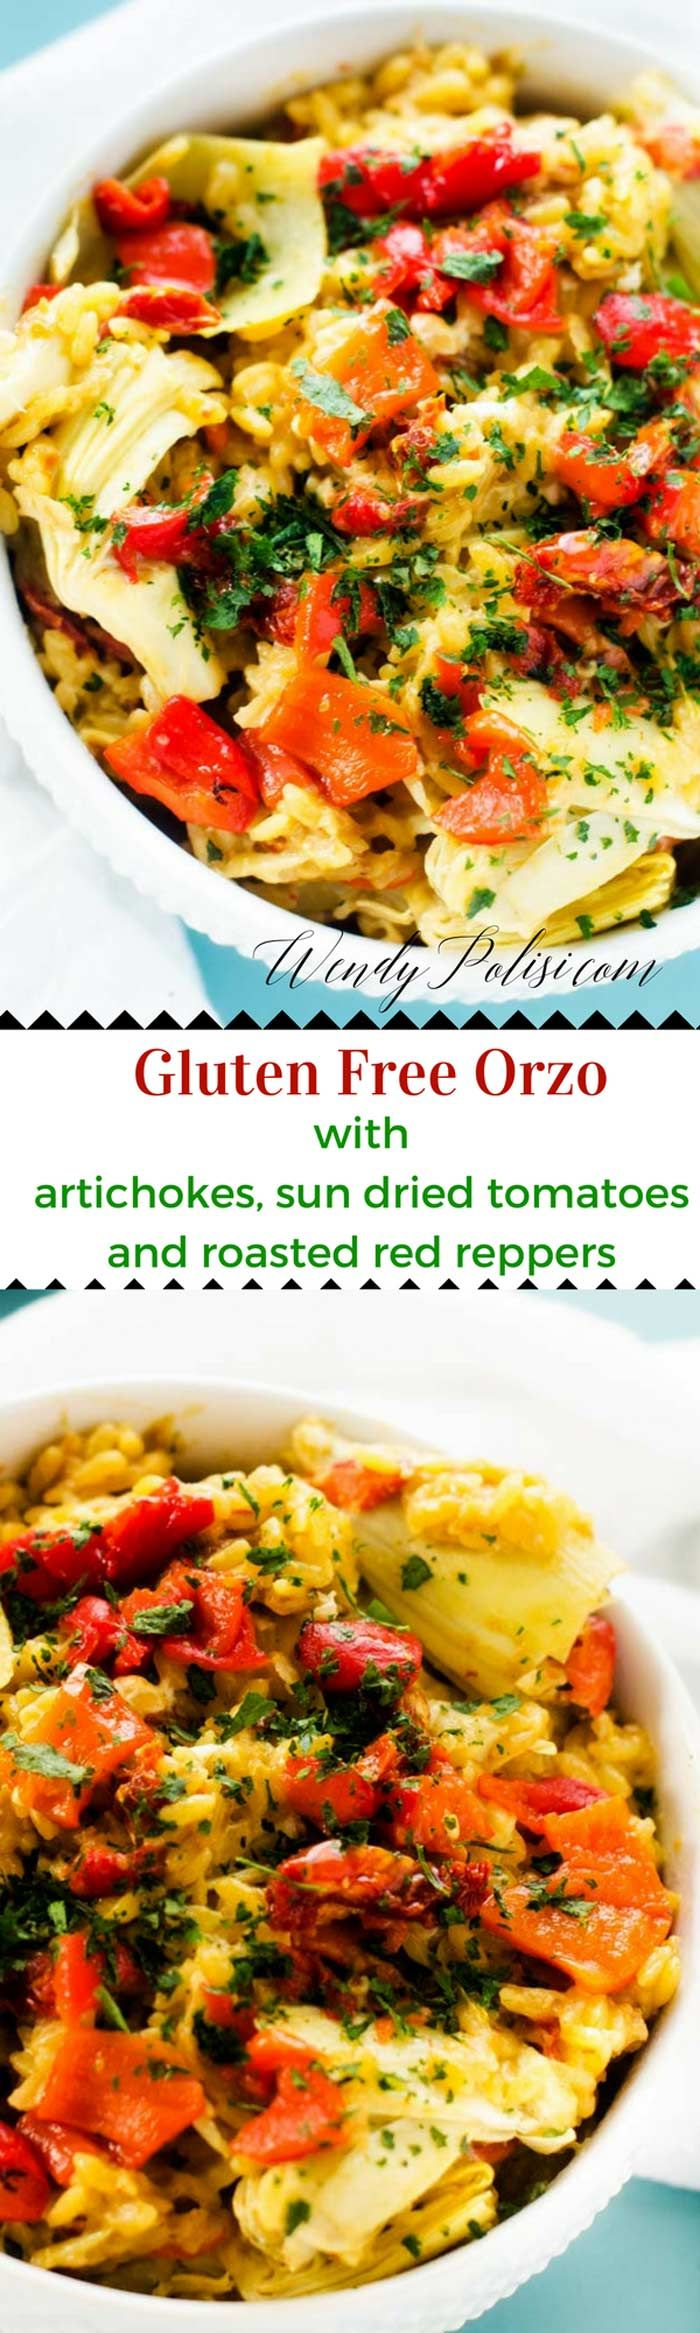 Gluten Free Orzo with Artichokes, Sun Dried Tomatoes & Roasted Red Peppers - This Gluten Free Orzo with Artichokes, Sun Dried Tomatoes & Roasted Red Peppers is an easy to make side dish or vegetarian meal. via @wendypolisi